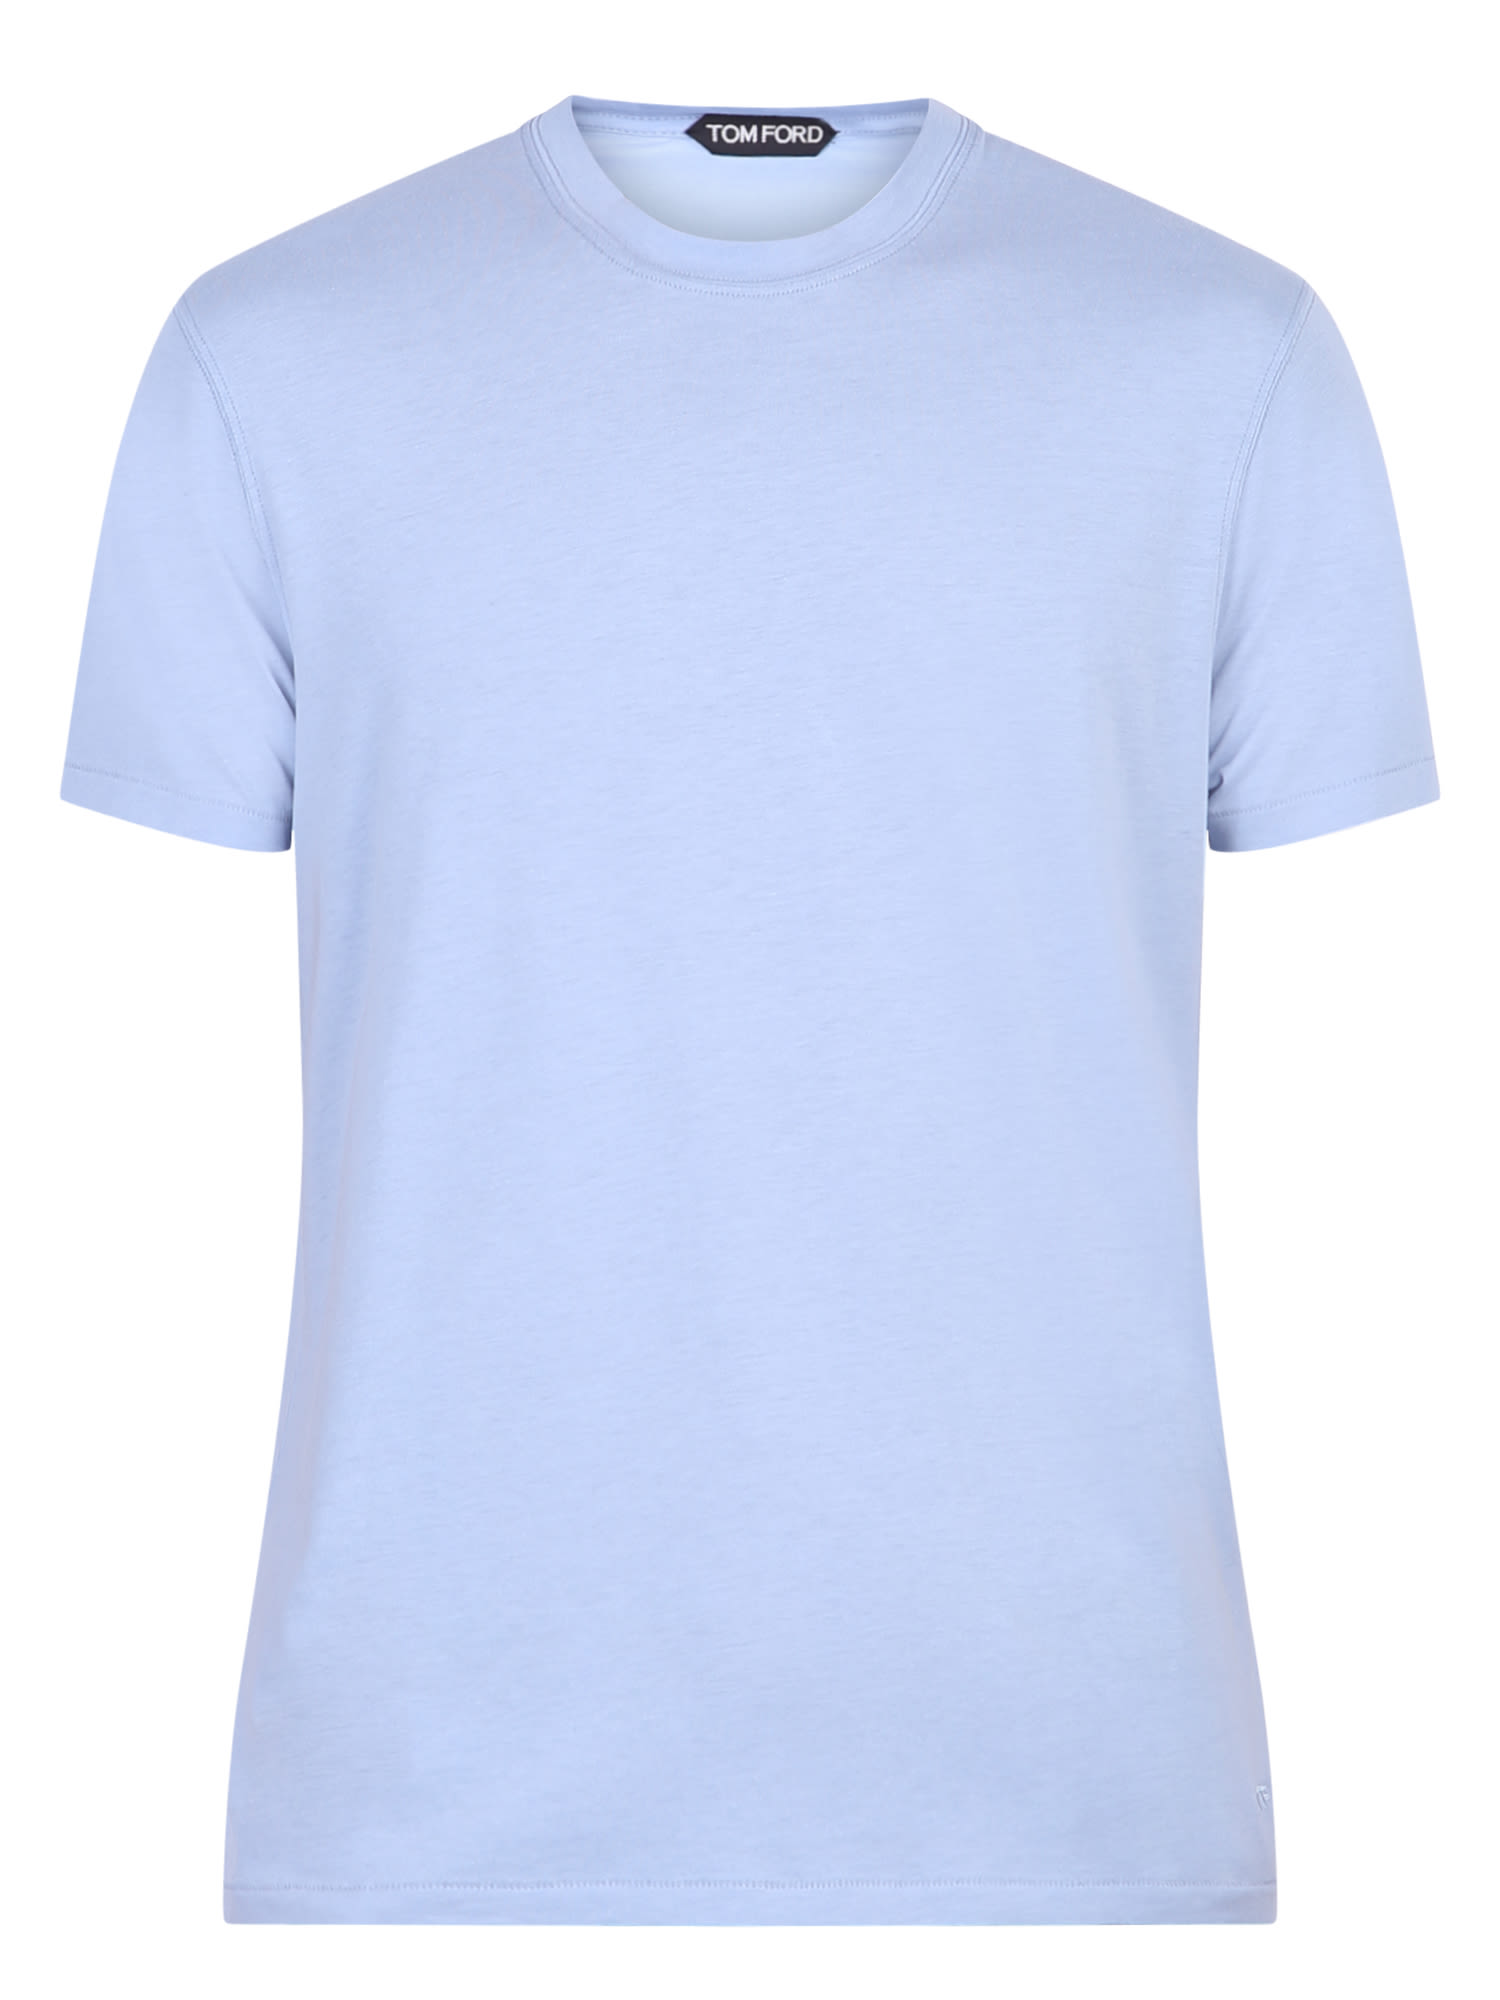 Tom Ford Cottons BLUE T-SHIRT